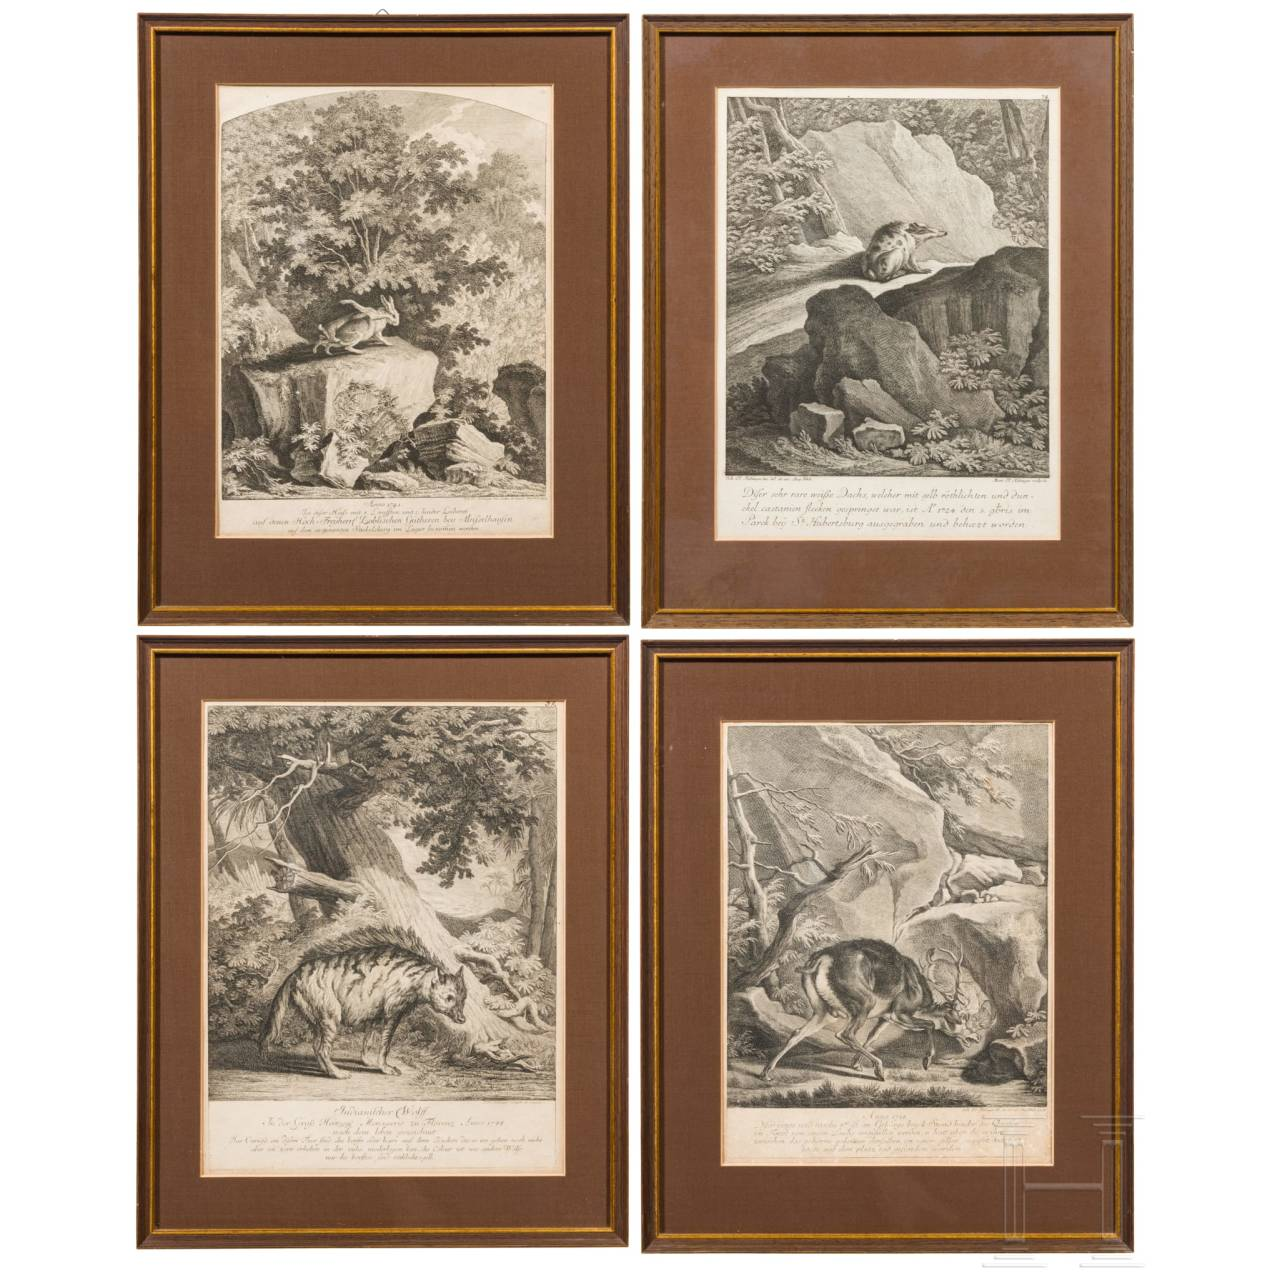 Johann Elias Ridinger, four framed copper engravings showing wild animals, Augsburg, ca. 1760